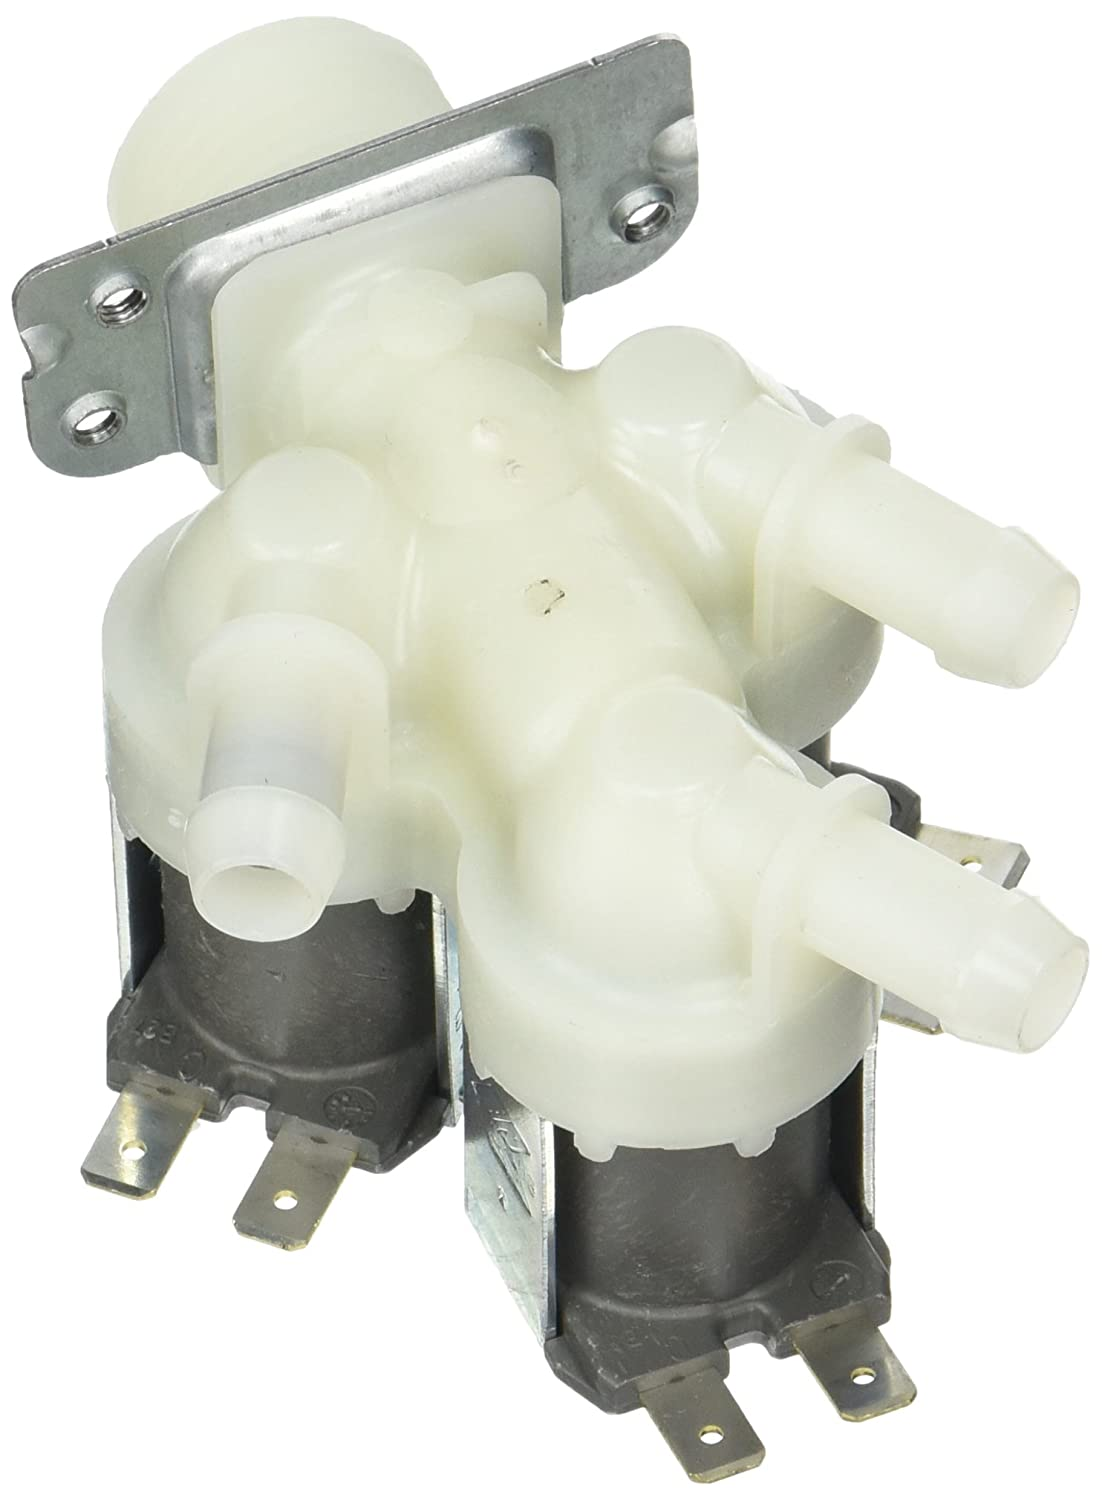 LG 5220FR2075L Washing Machine Water Inlet Valve